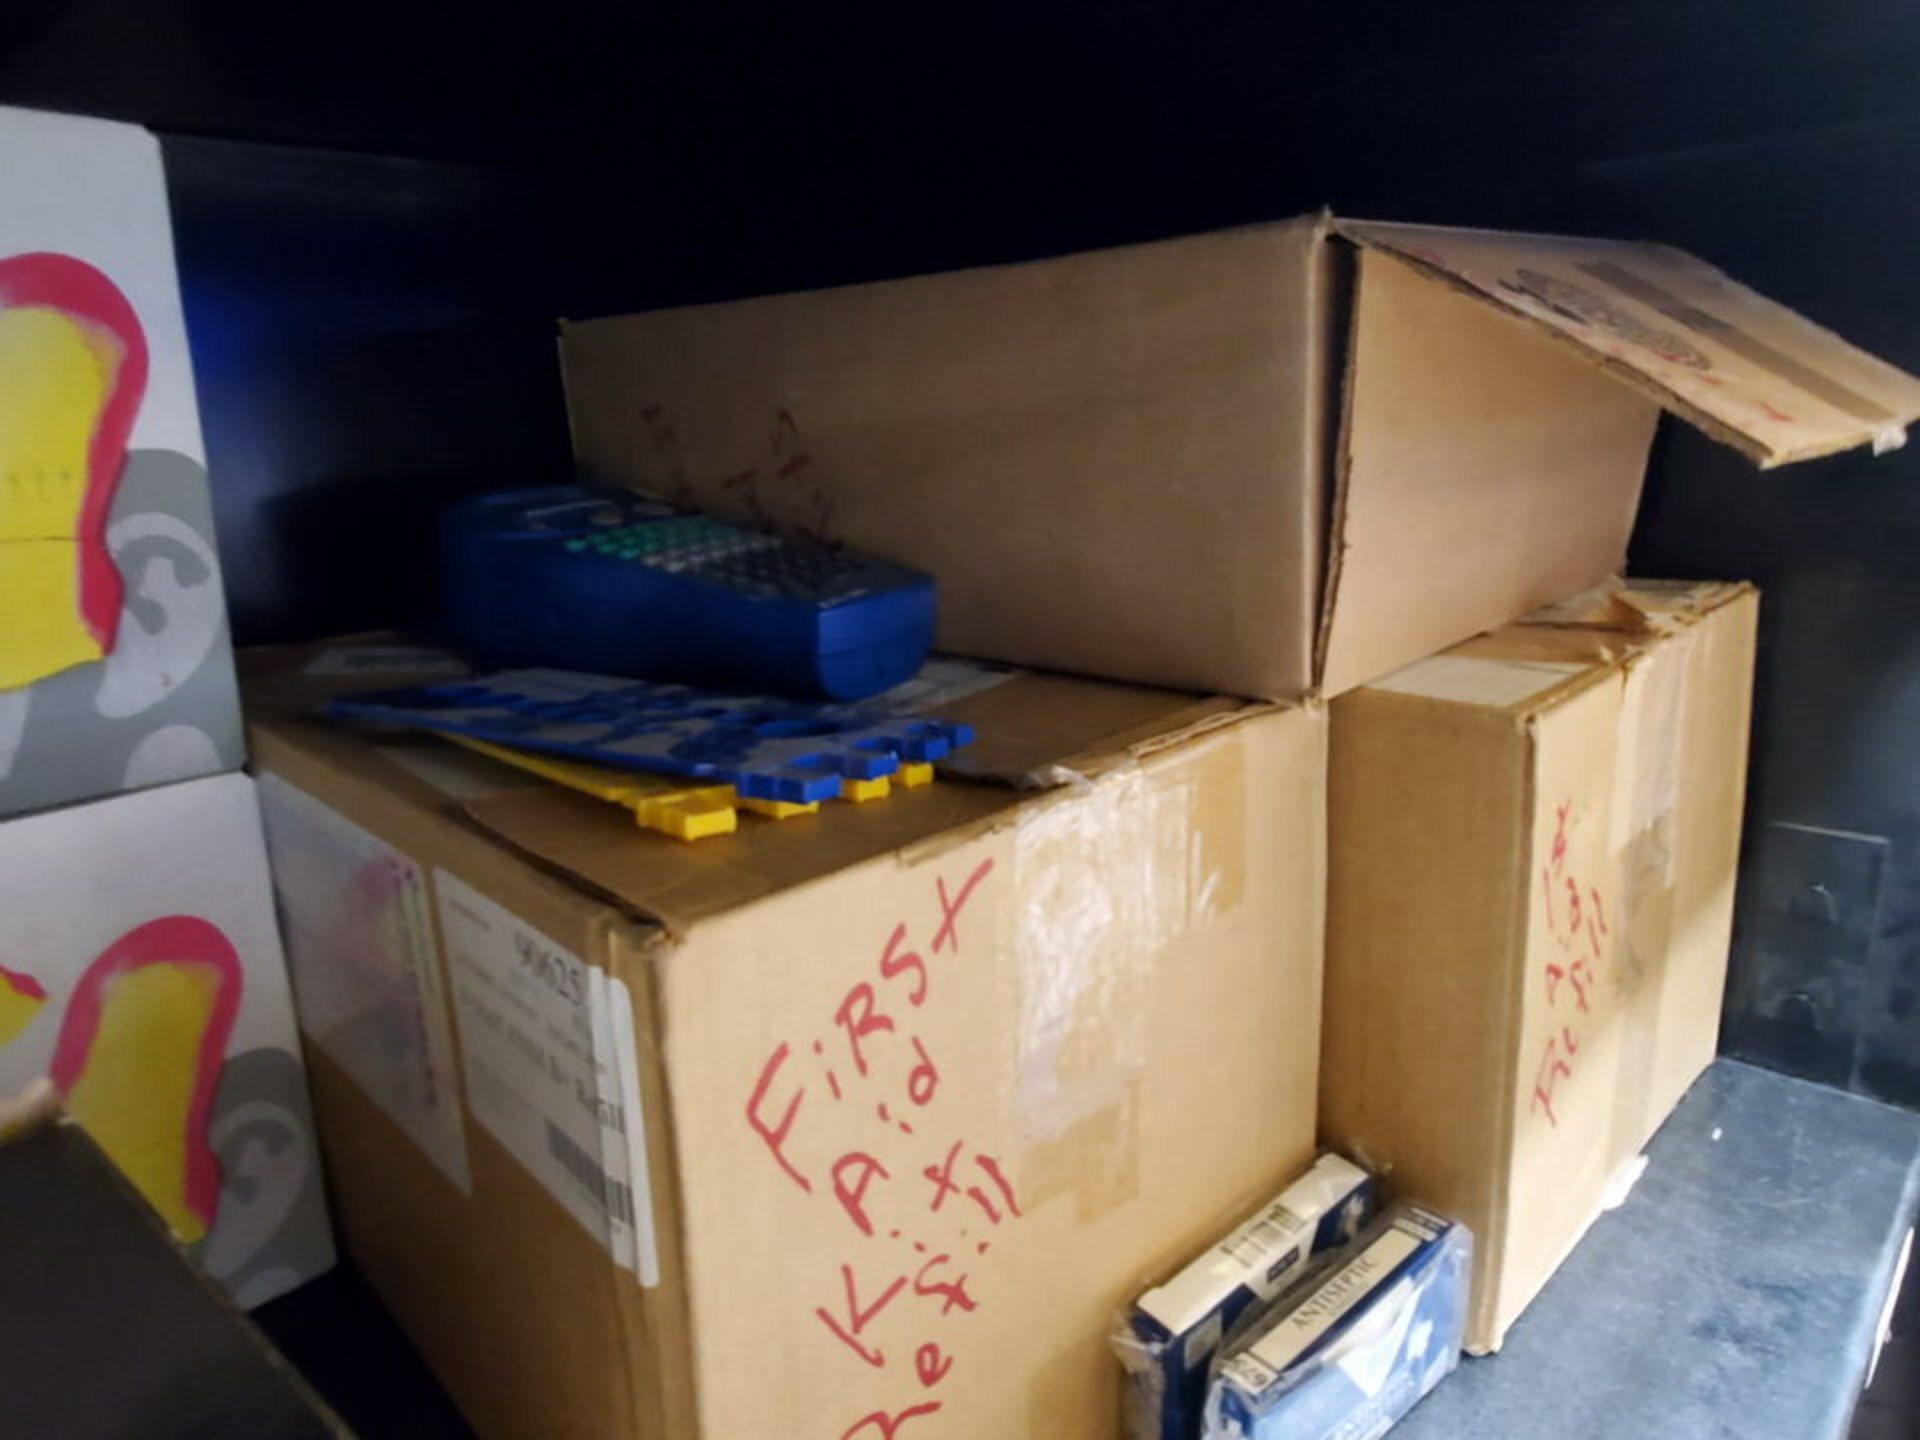 Metal Storage Locker To Include But Not Limited To: First Aid Refill Kits, Assorted Fittings, - Image 6 of 13